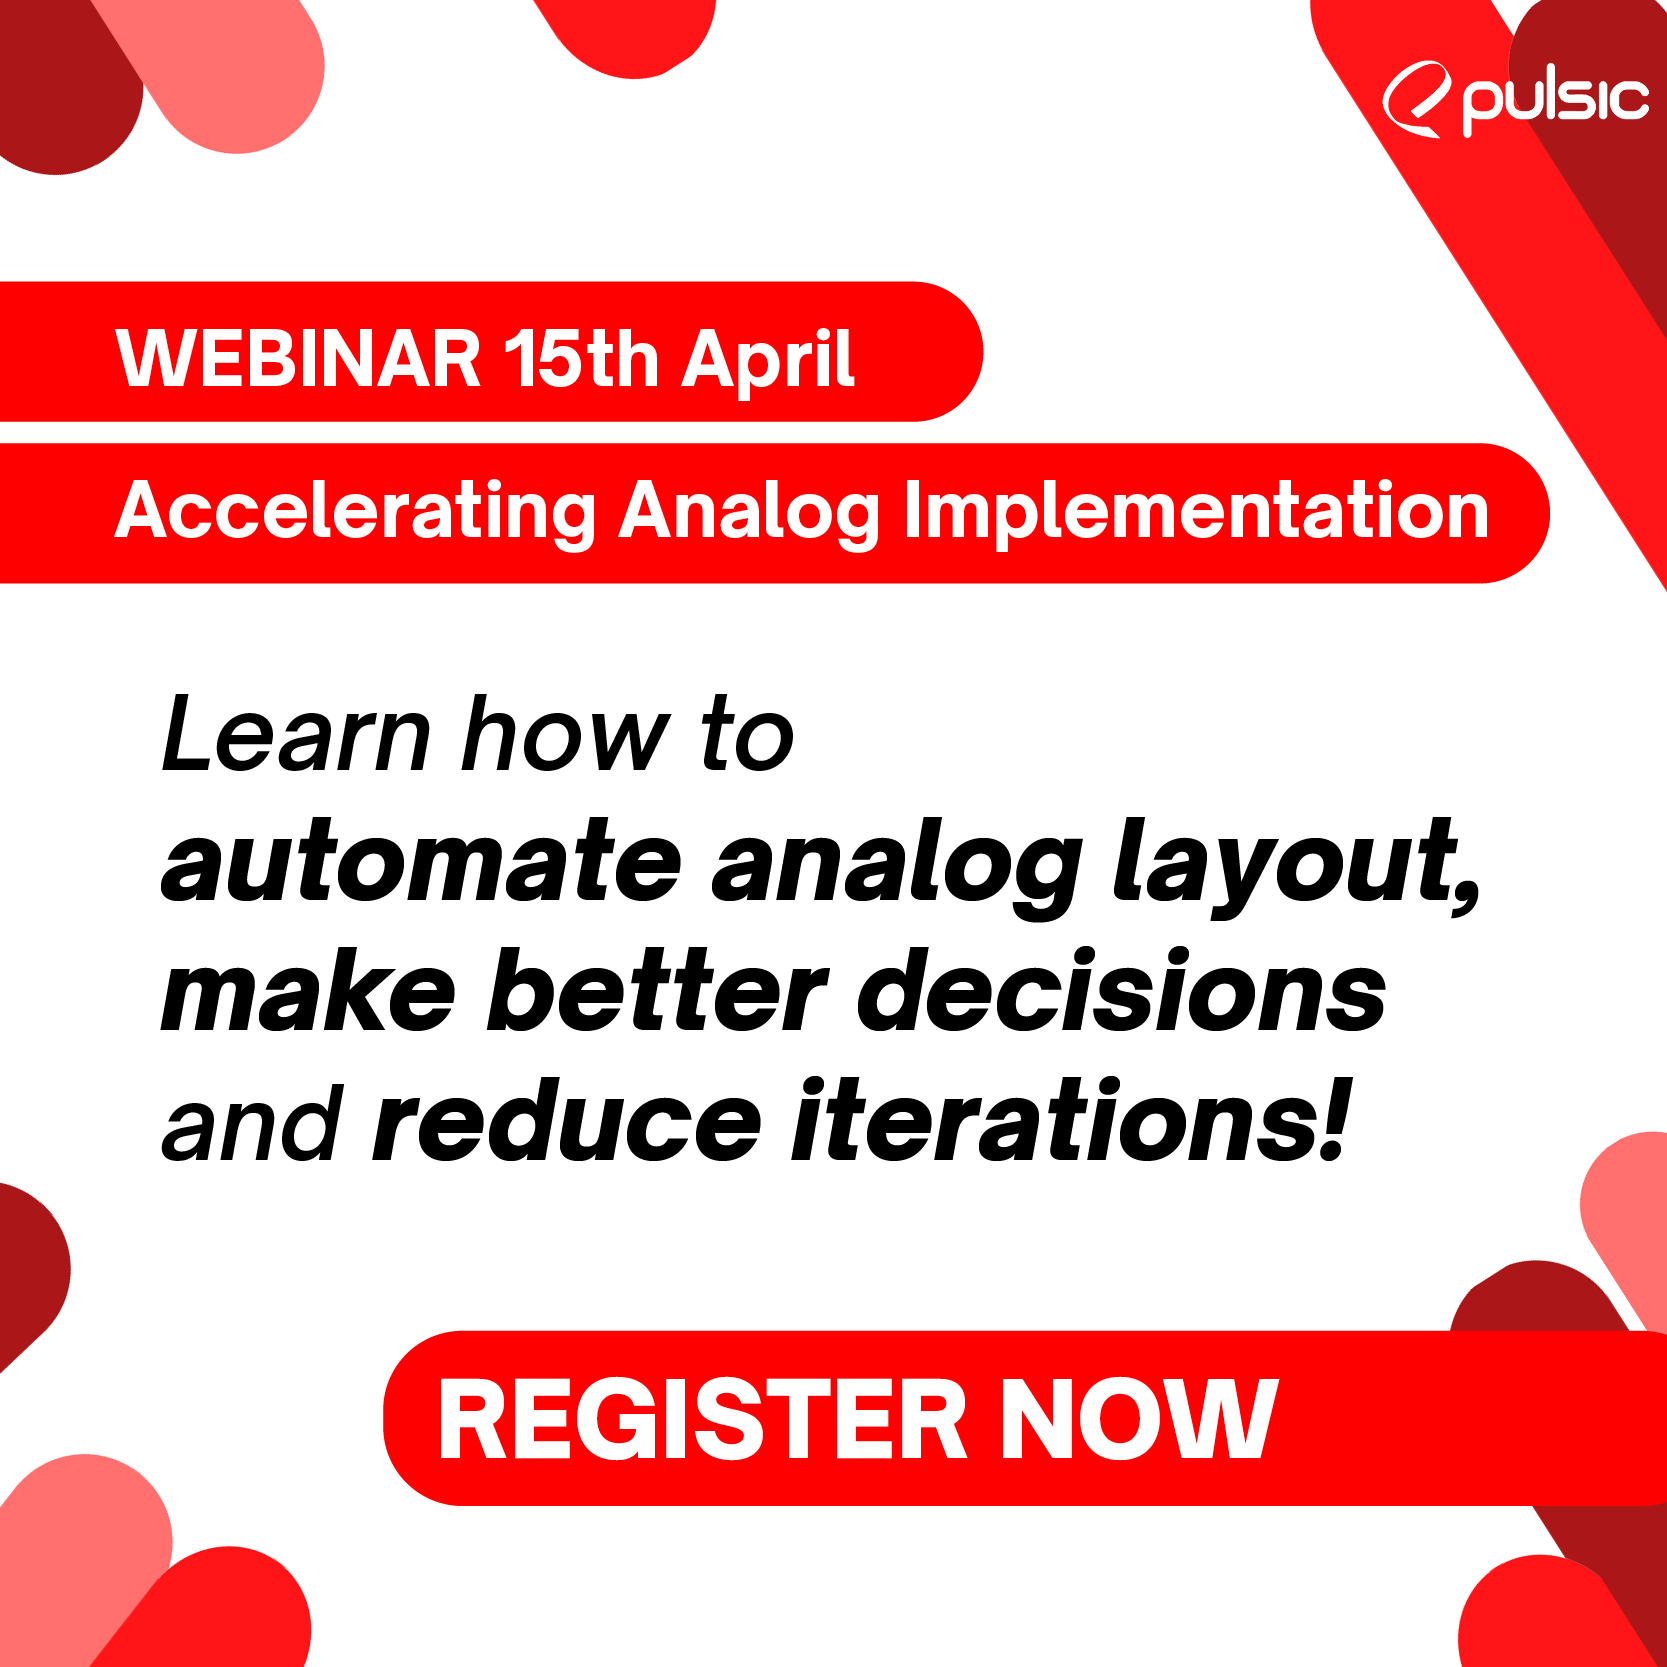 Accelerating Analog Implementation